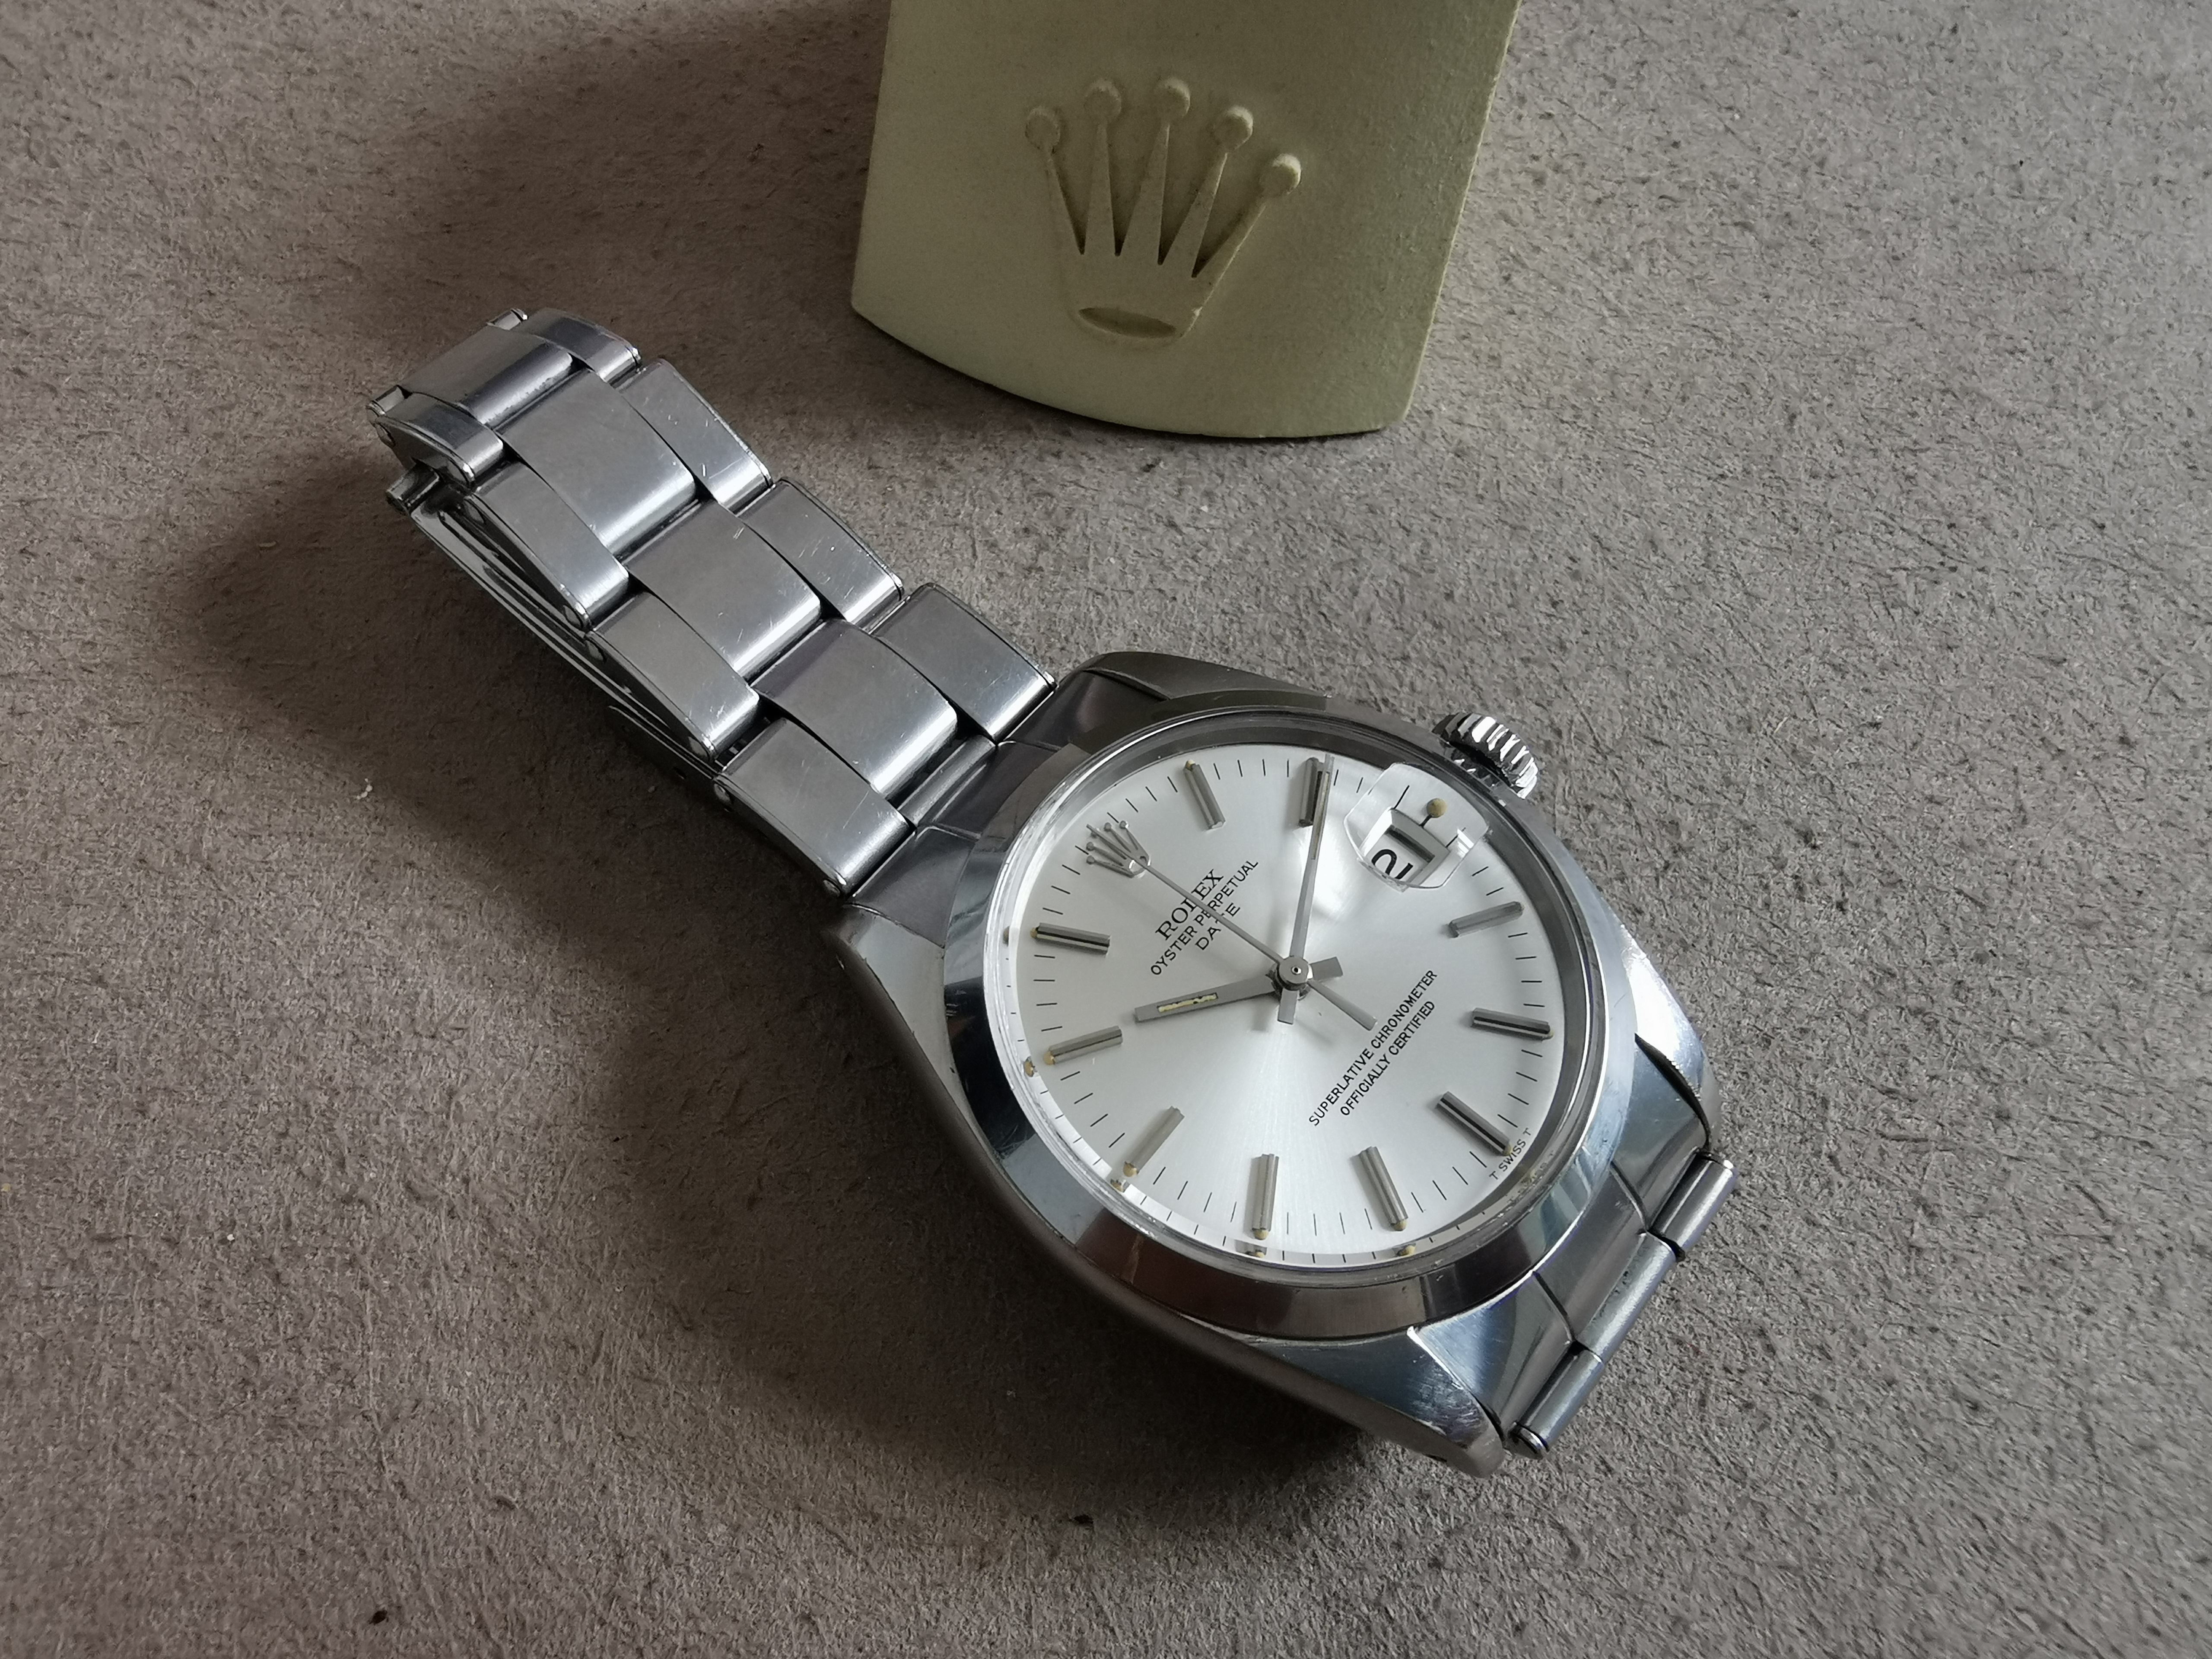 Rolex Oyster Perpetual Date Oyster Perpetual Date Silver Dial Smooth Bezel 34mm men's watch | San Giorgio a Cremano